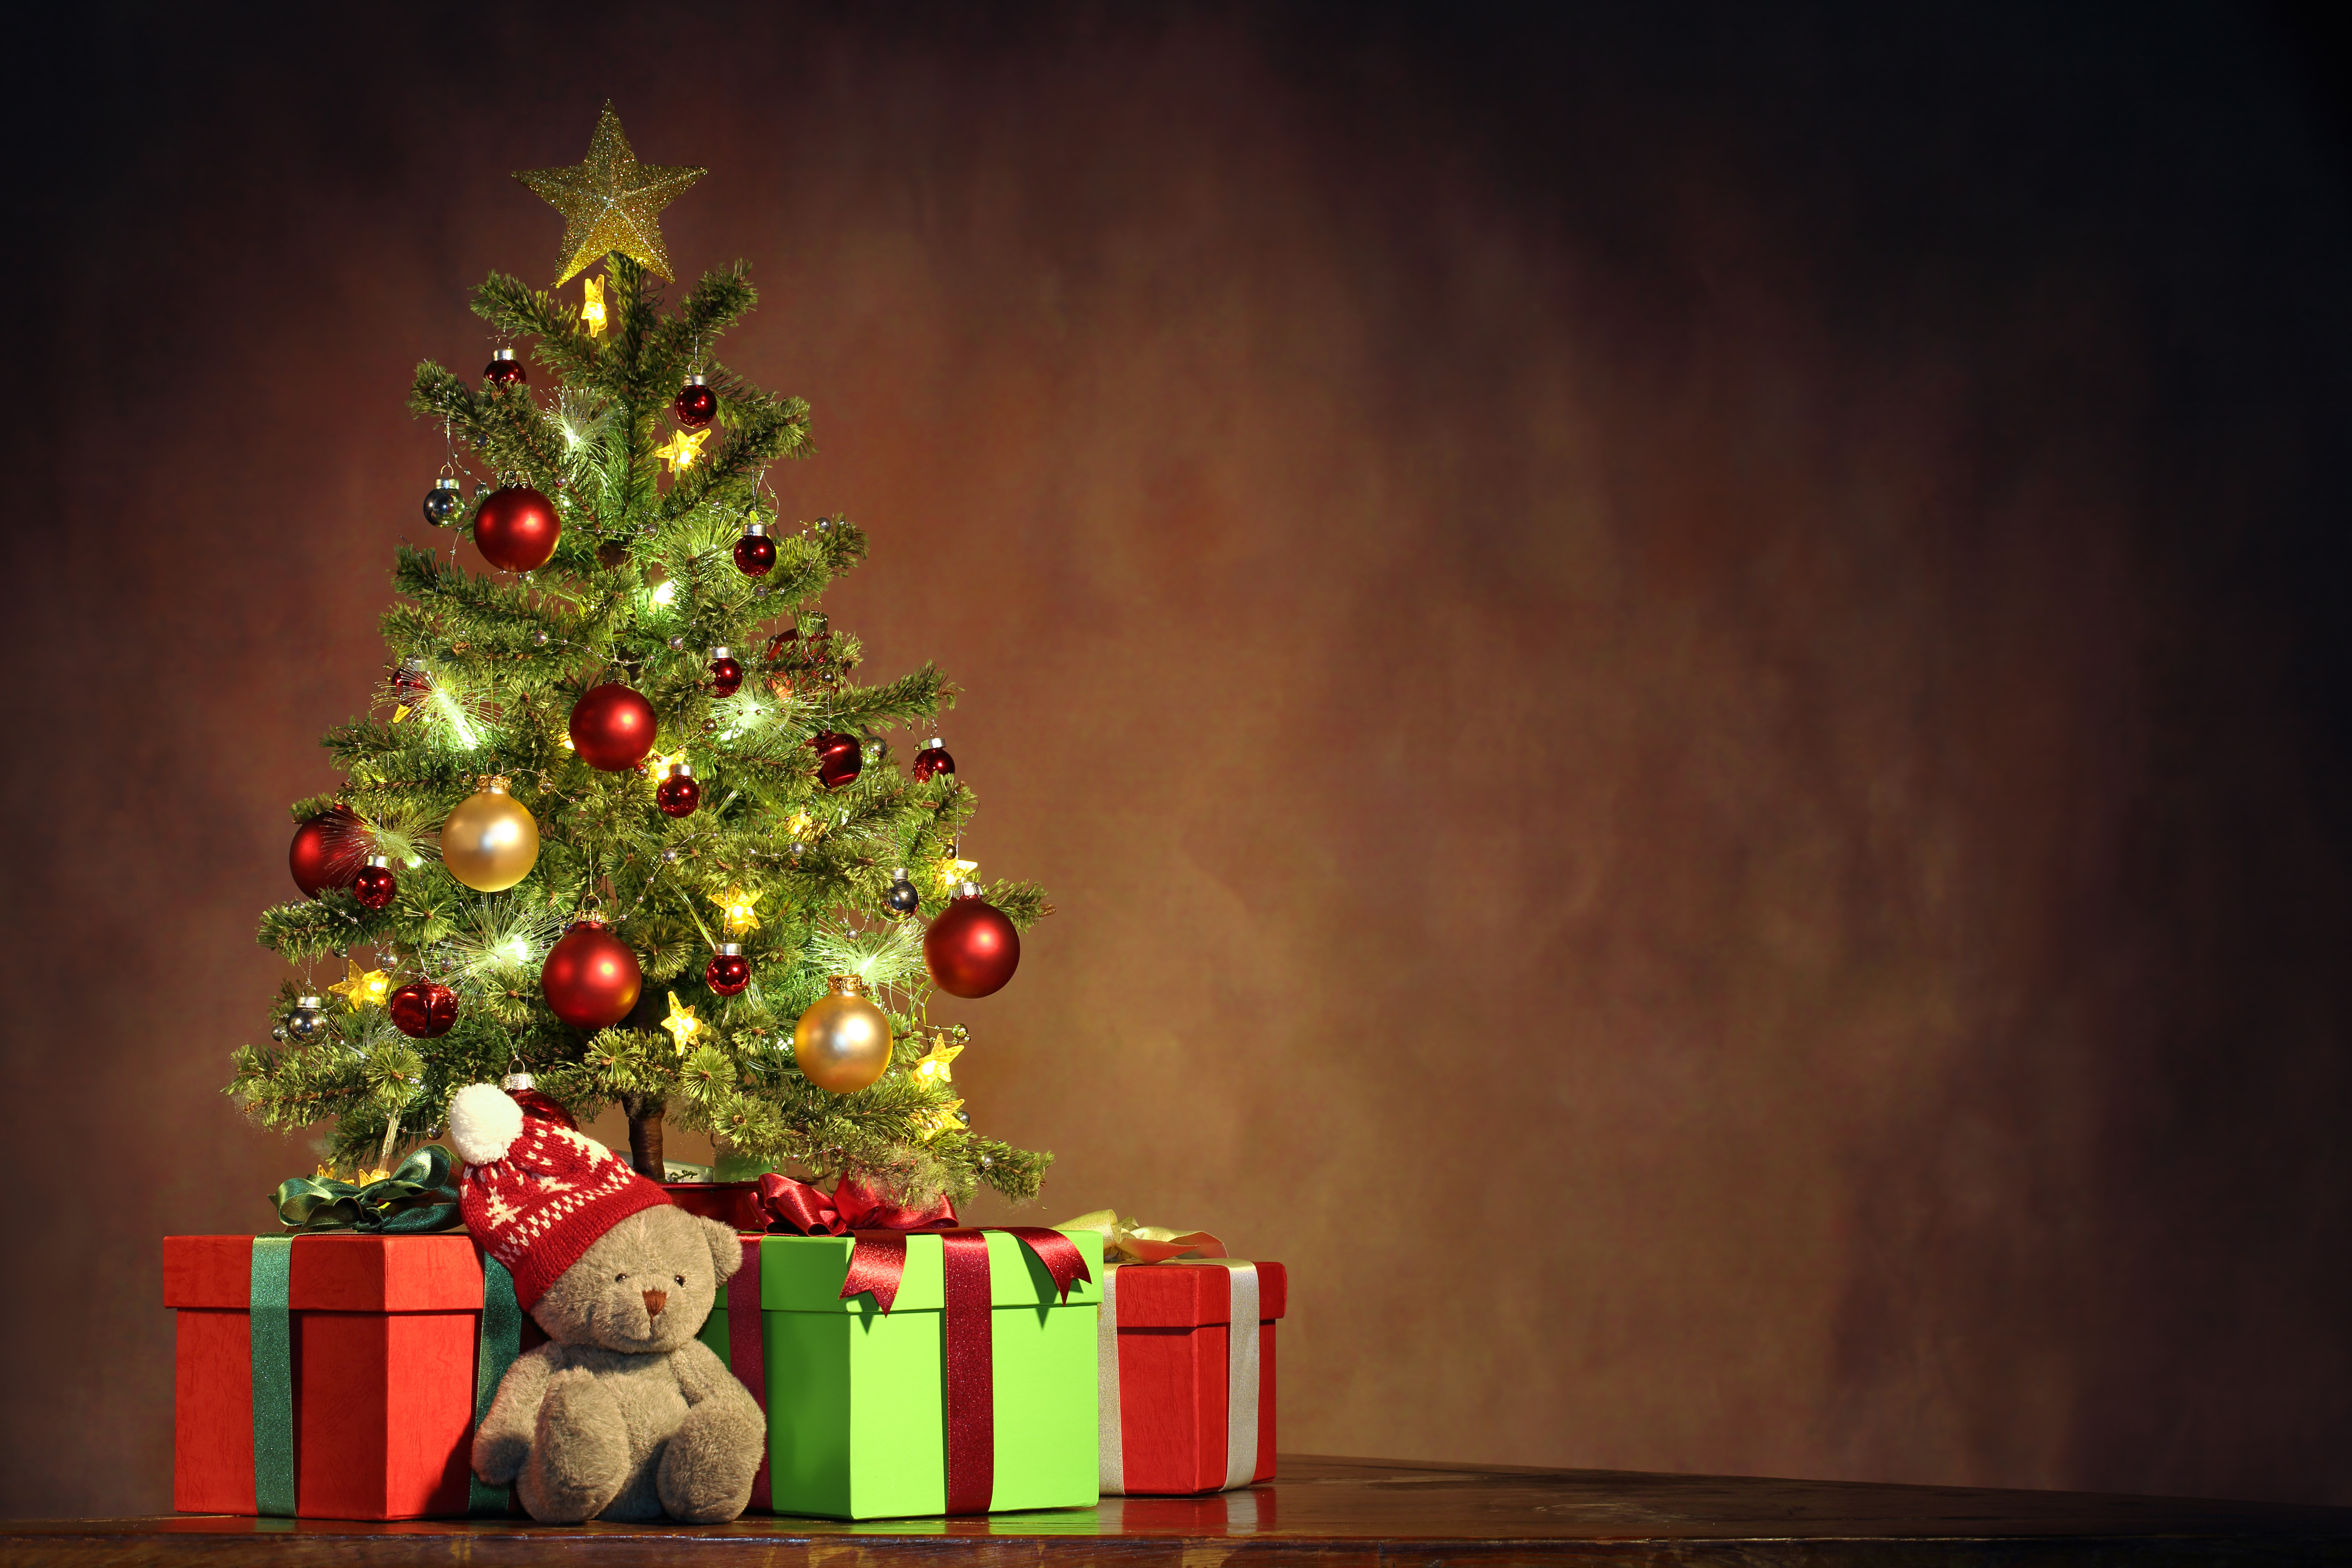 Image: Christmas, new year, gifts, Teddy bear, toy, tree, star, decoration, balloons, fancy